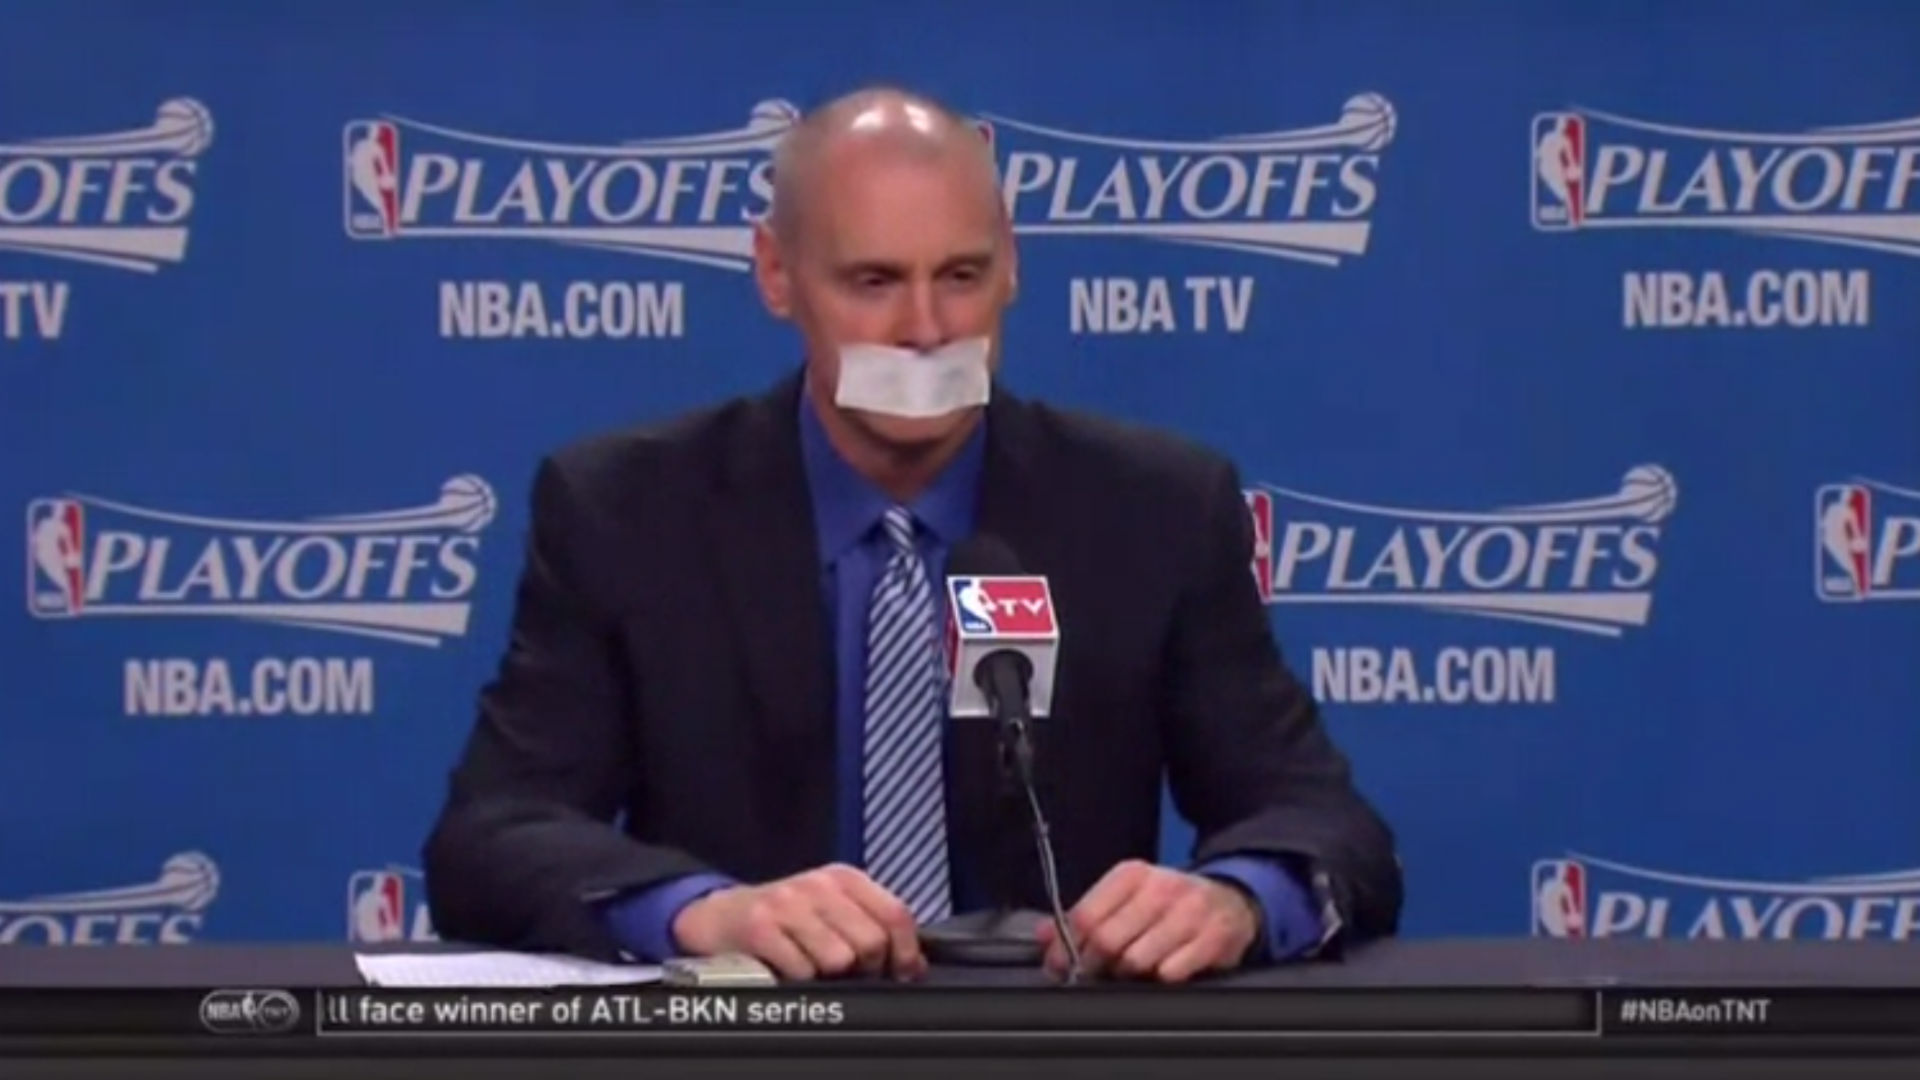 Rick Carlisle tapes mouth shut to avoid another fine